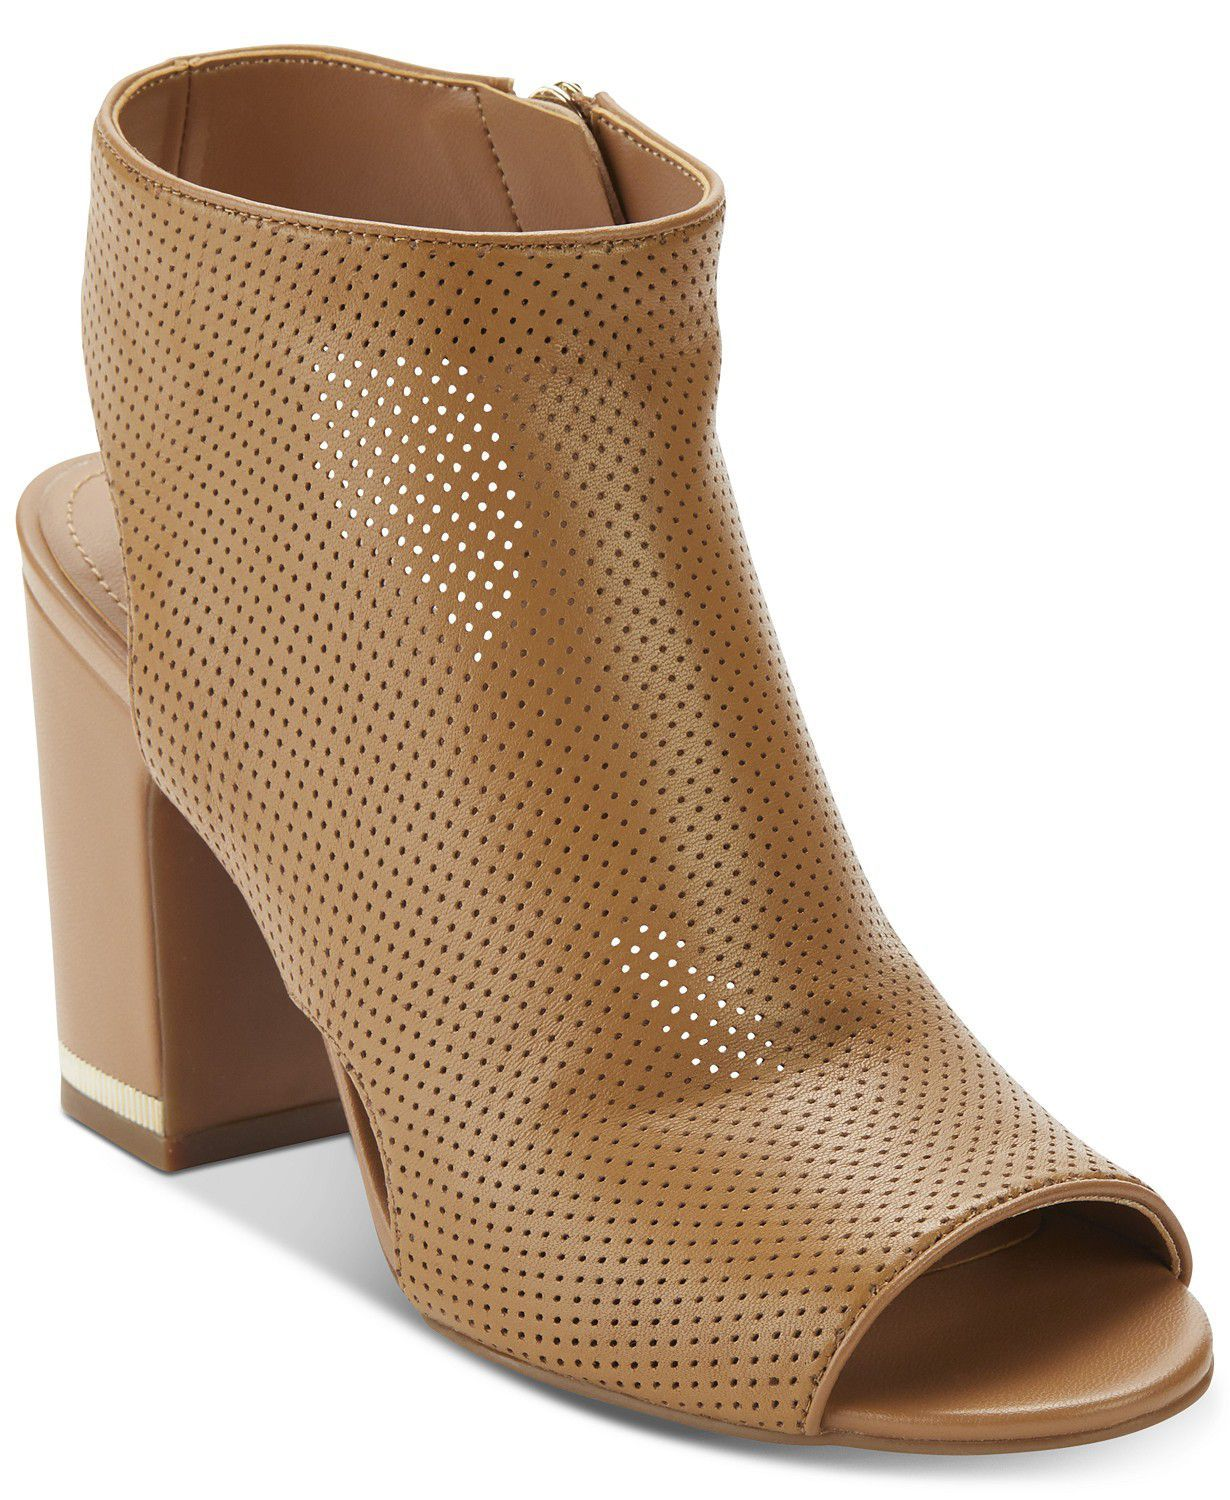 Summer Booties DKNY macys.com $120.00 SHOP NOW Finding an ankle bootie that's not meant for autumn can be tricky—unless you're an editor. The amount of compliments we get when wearing ours in the warm months proves that it's a shape a lot of women want in their closet.